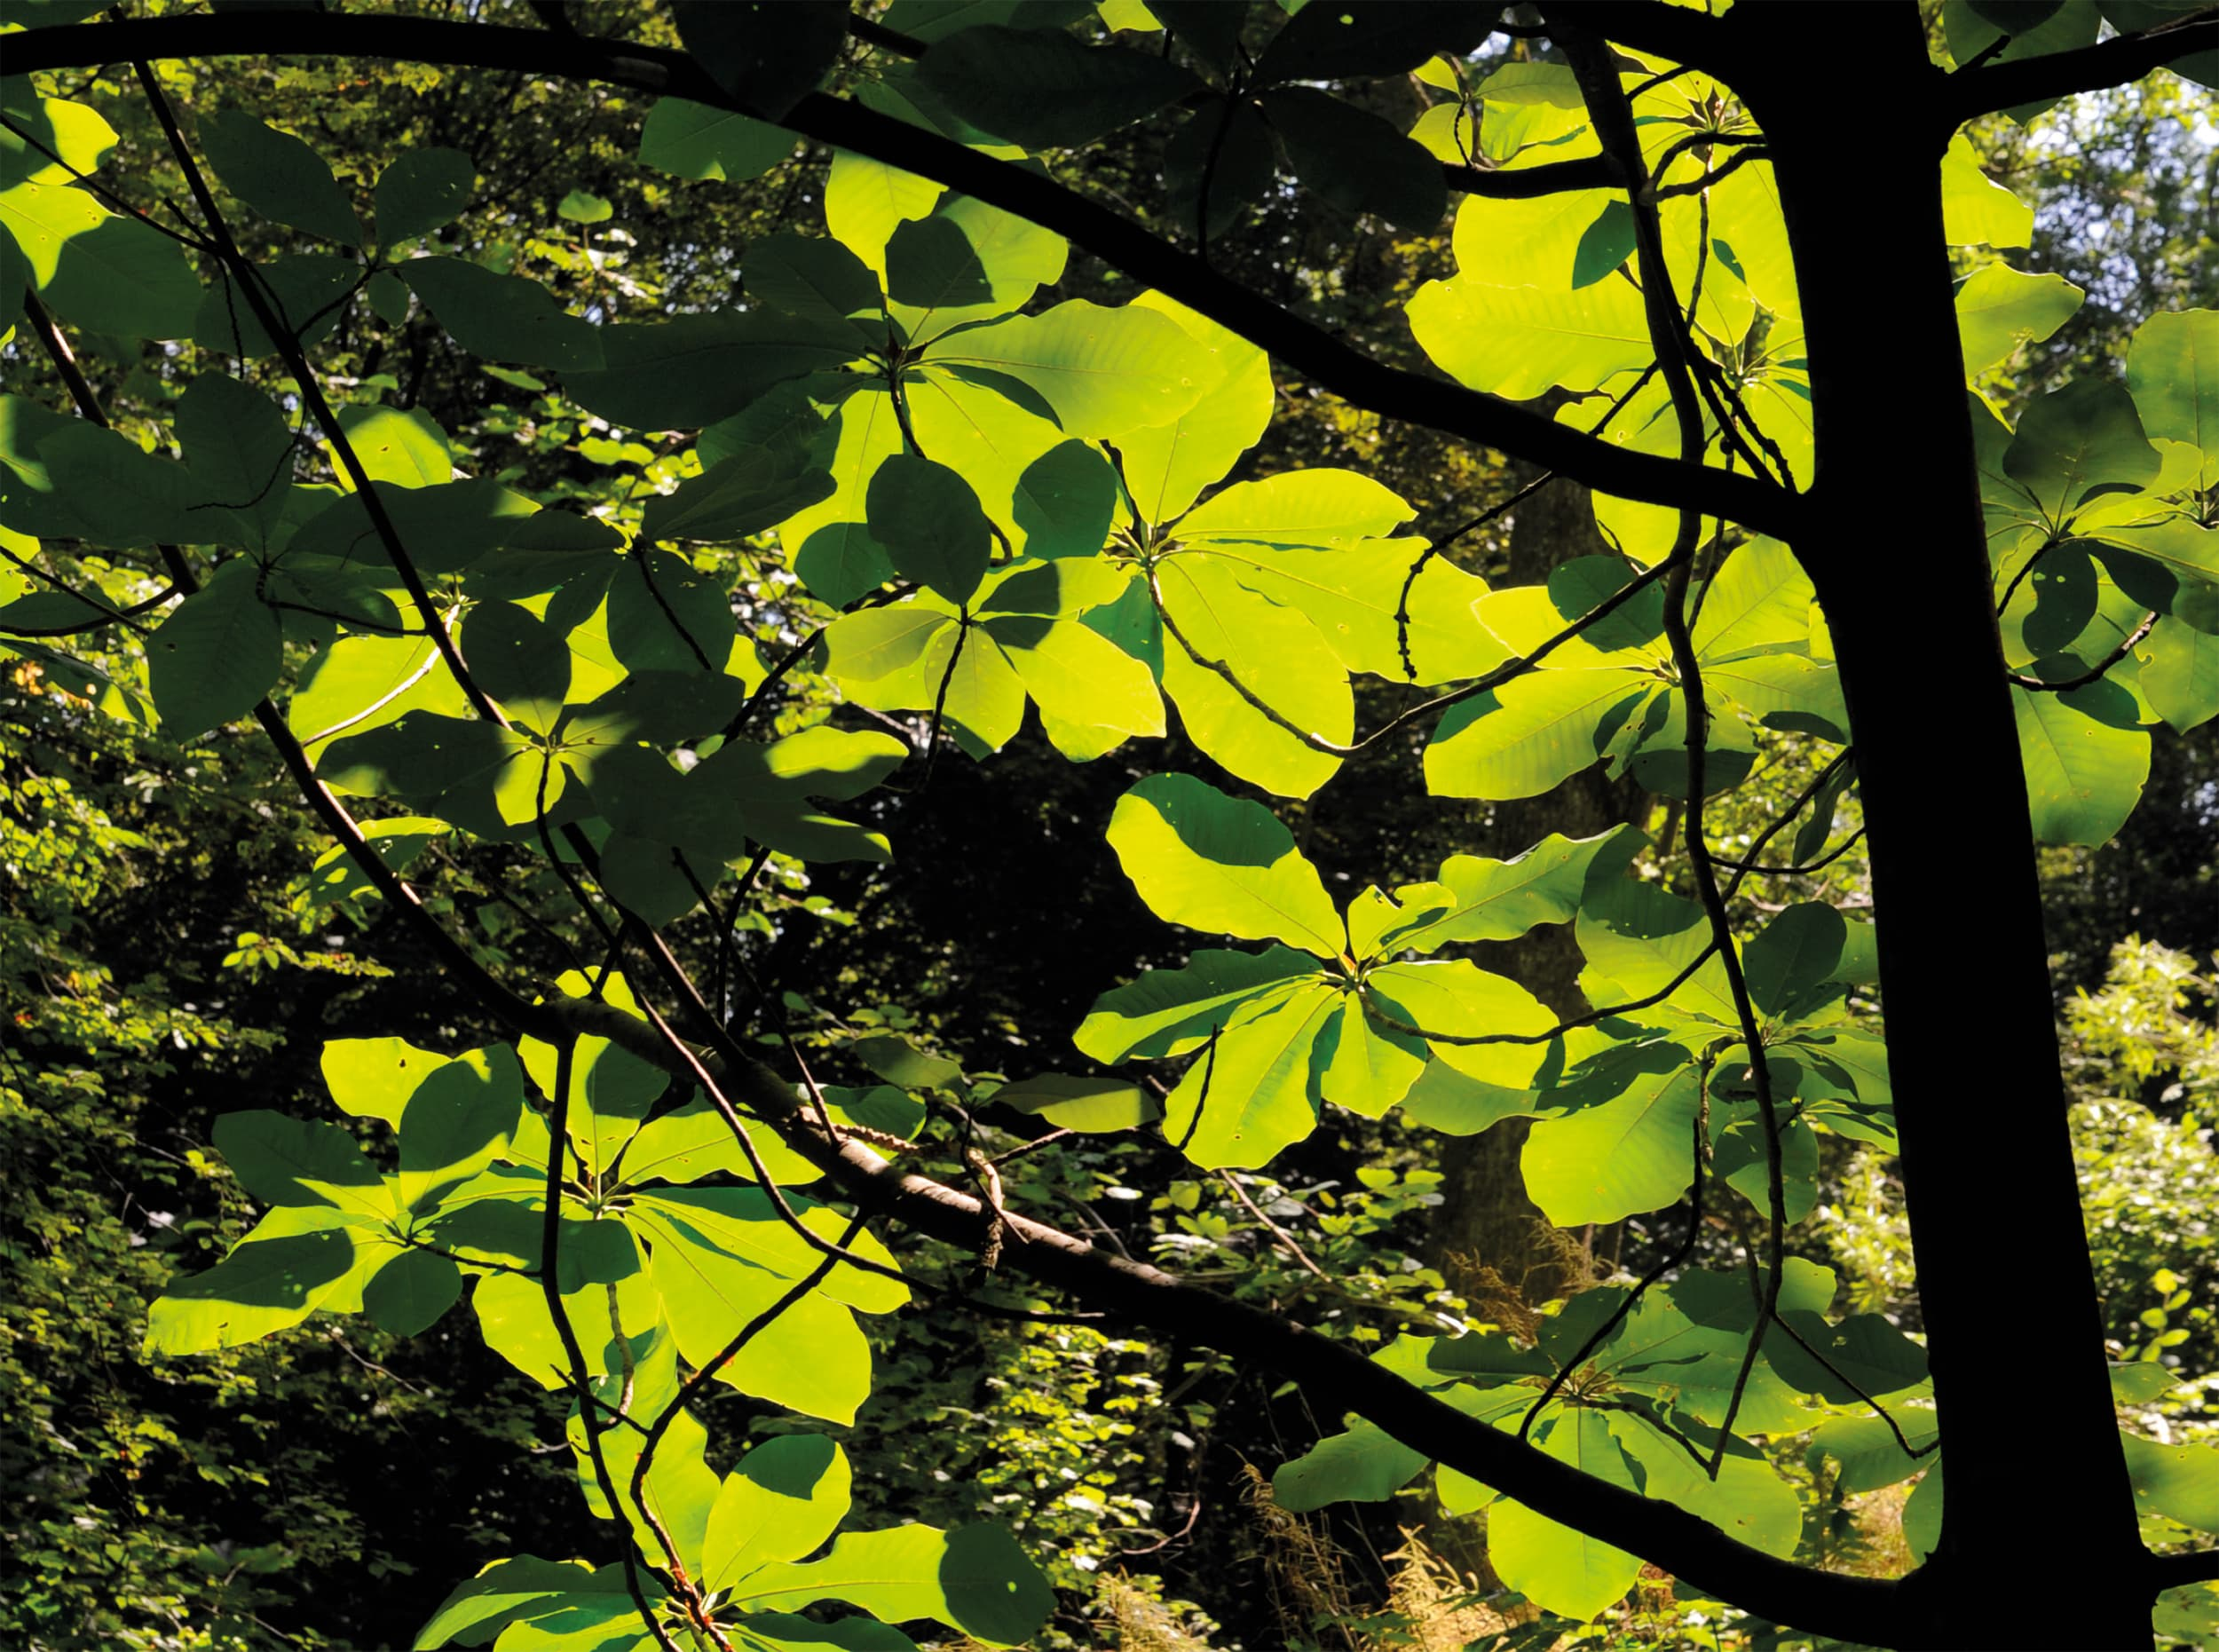 Japanese bigleaf magnolia. The leaves are perhaps the species' greatest characteristic.